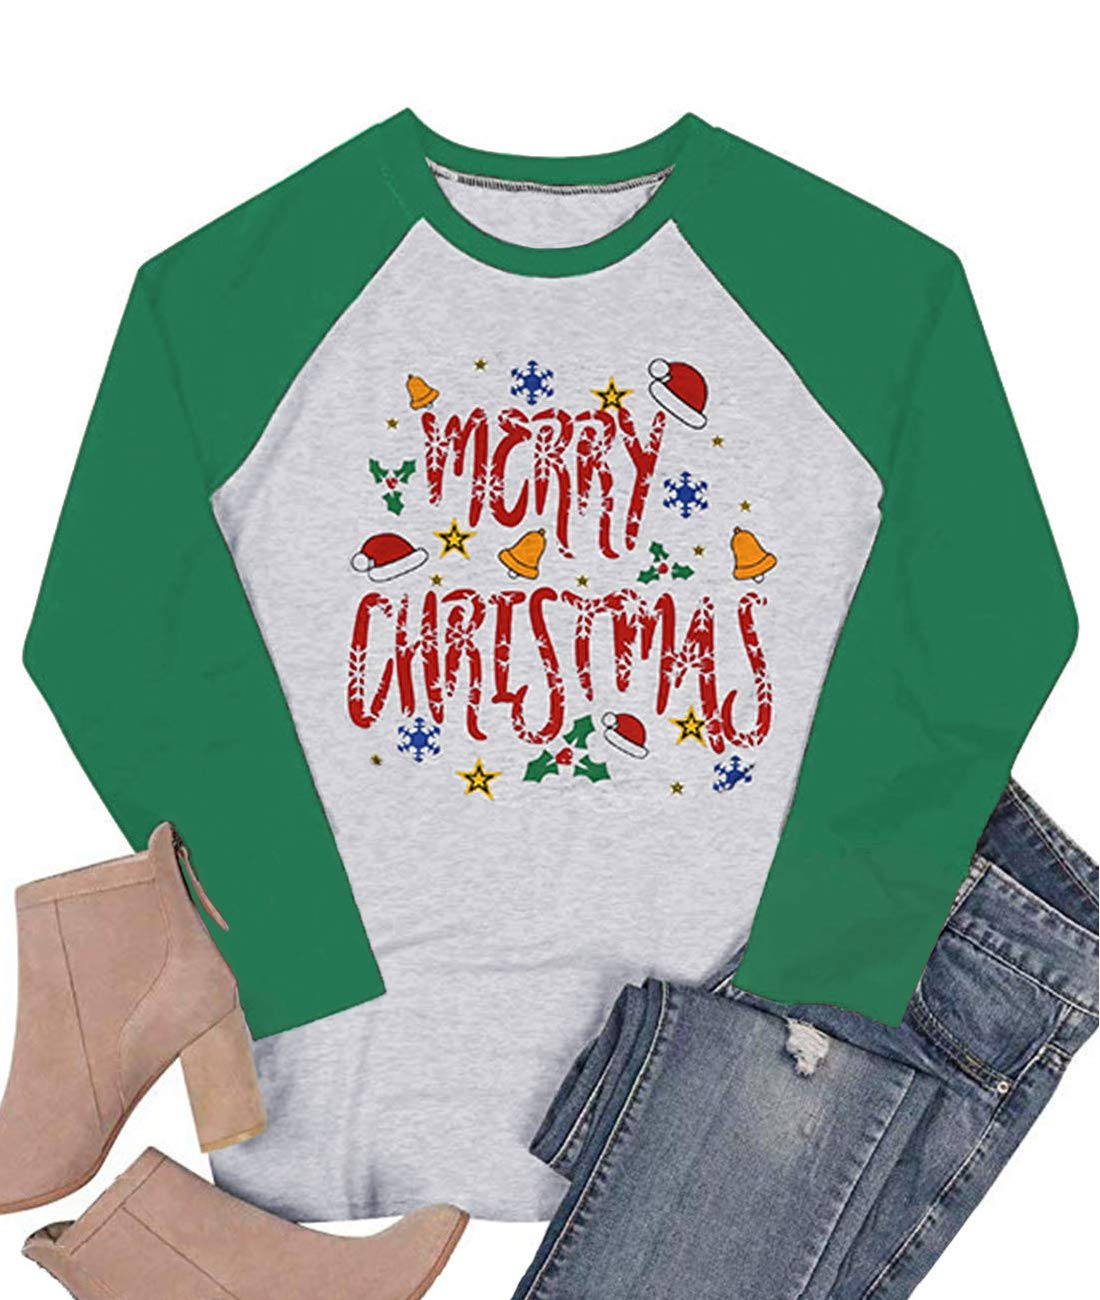 LeMarnia Xmas Shirts for Women, Ladies Long Sleeve Round Neck Casual Christmas Tops Funny Graphic Tees Patchwork Cute Letter T-Shirts Green2 L